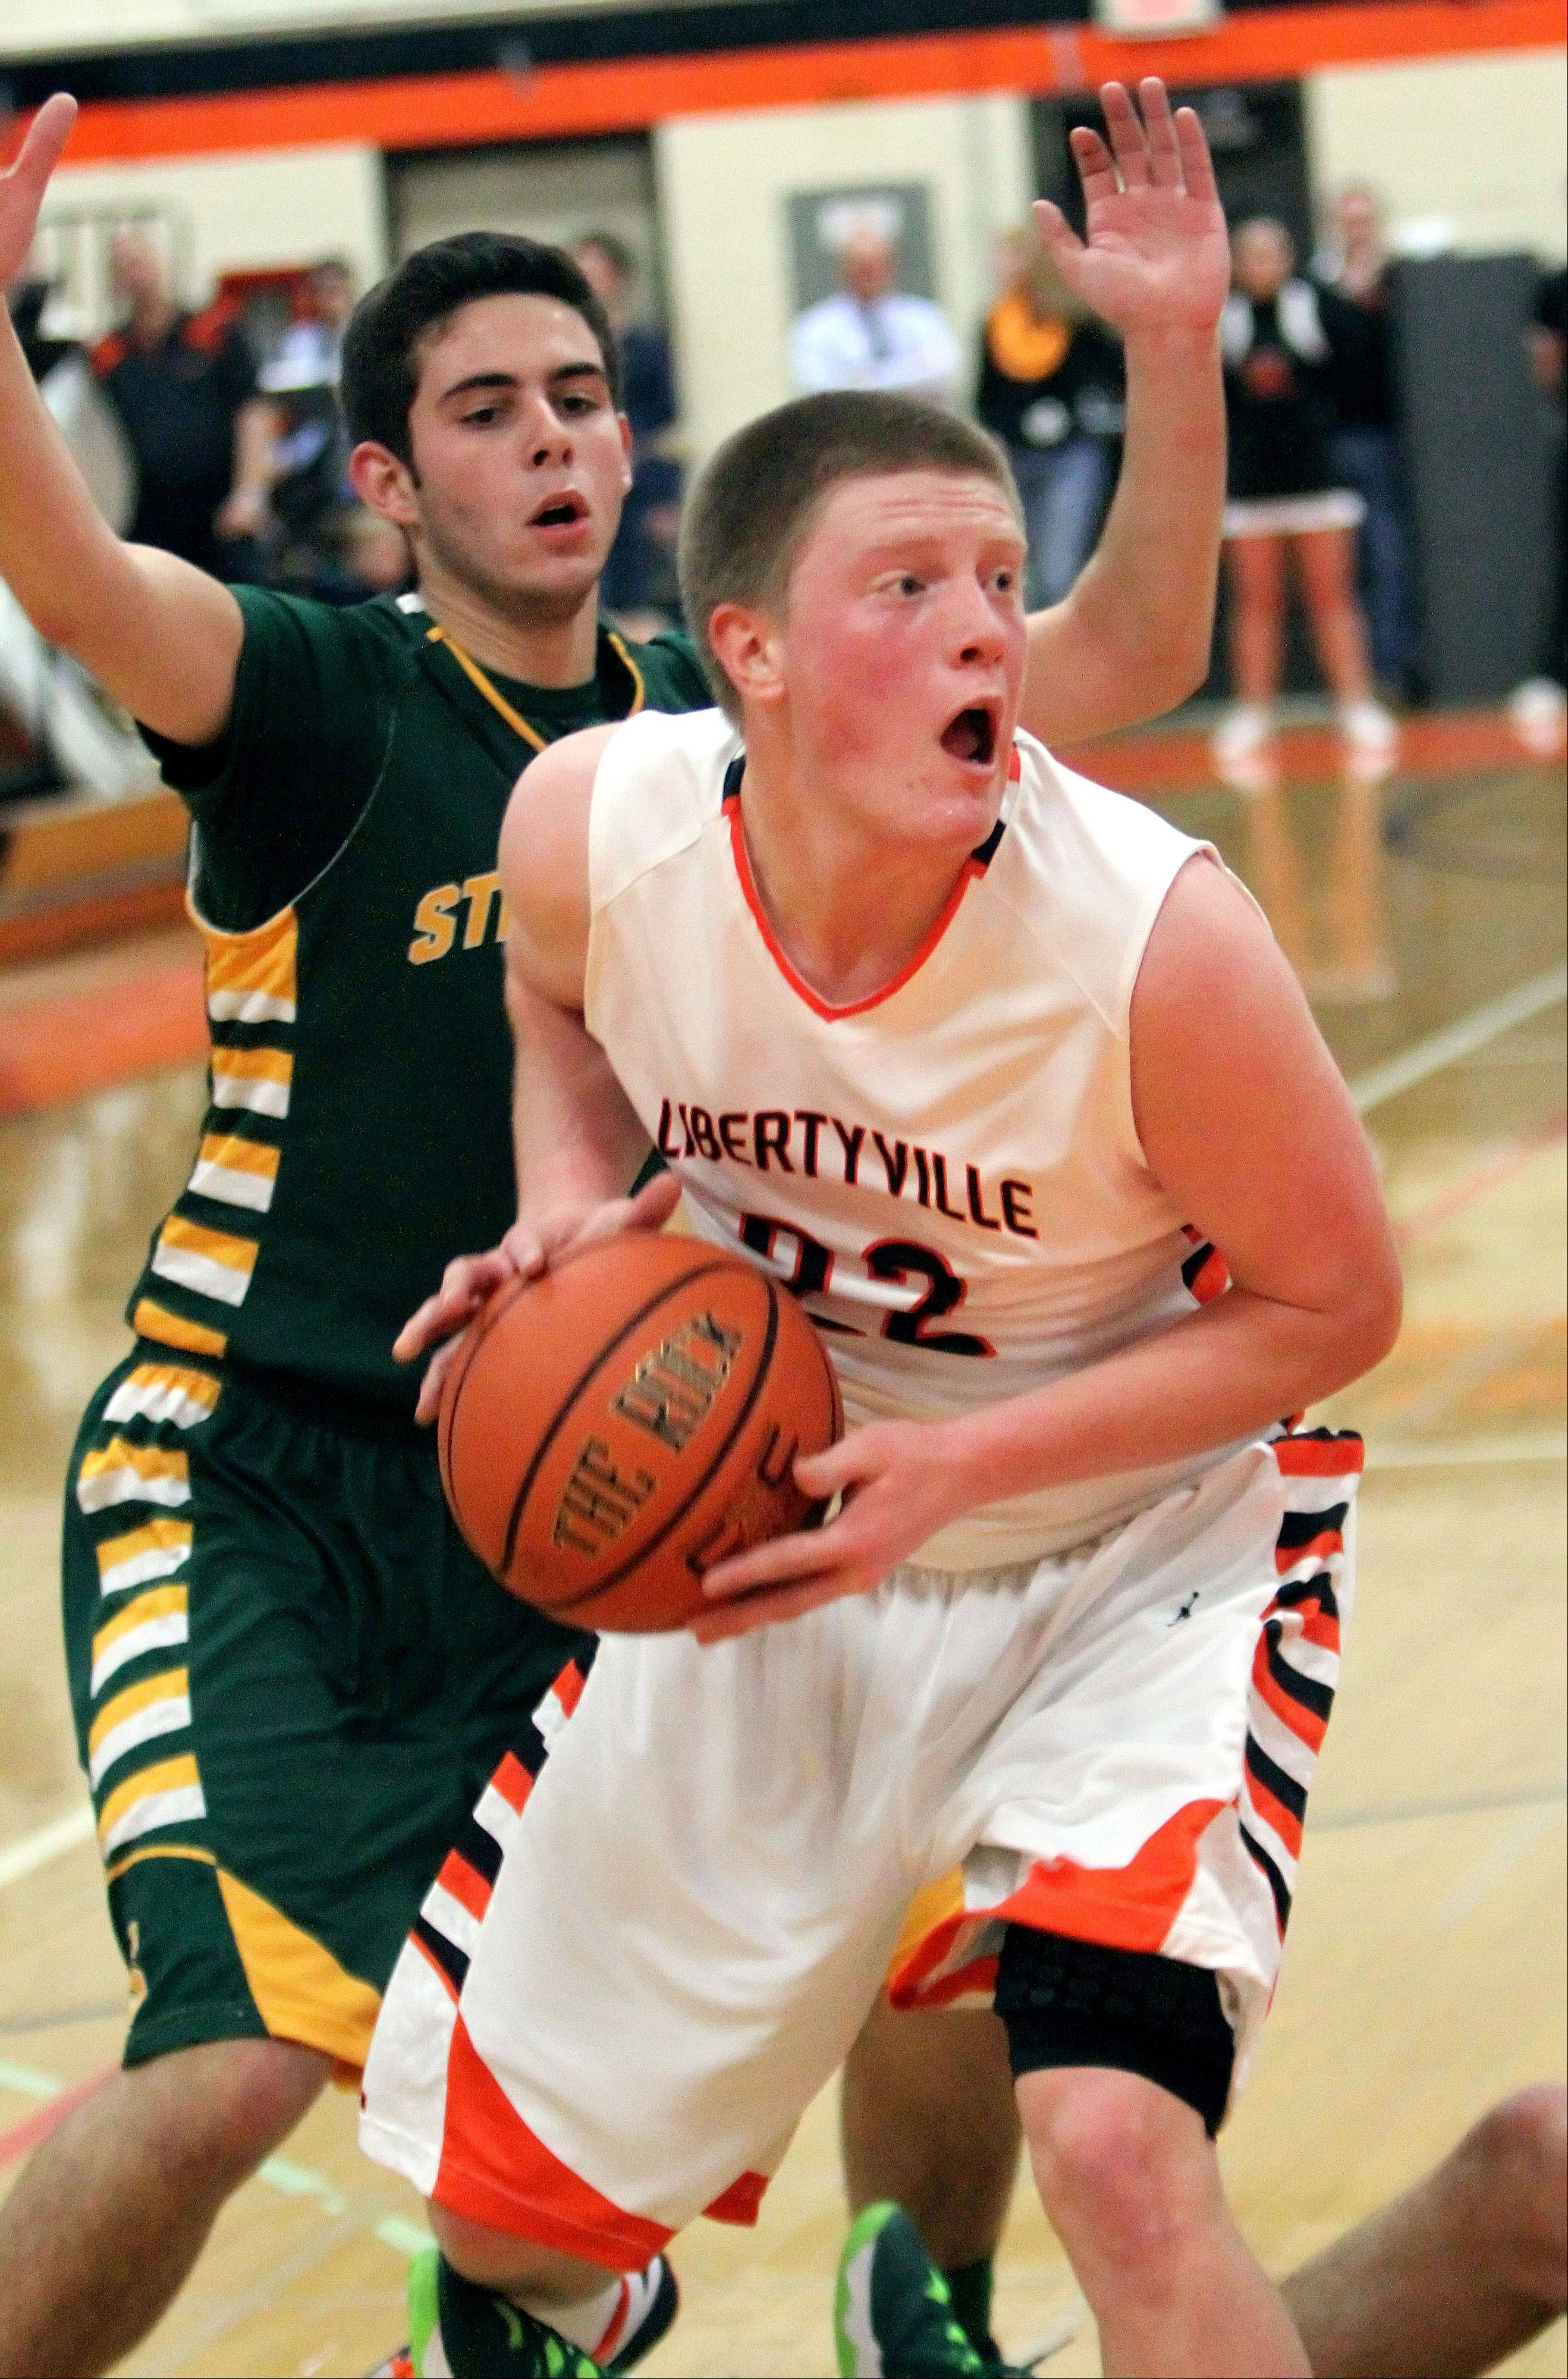 Libertyville's Jack Lipp, right, drives past Stevenson's Parker Nichols.